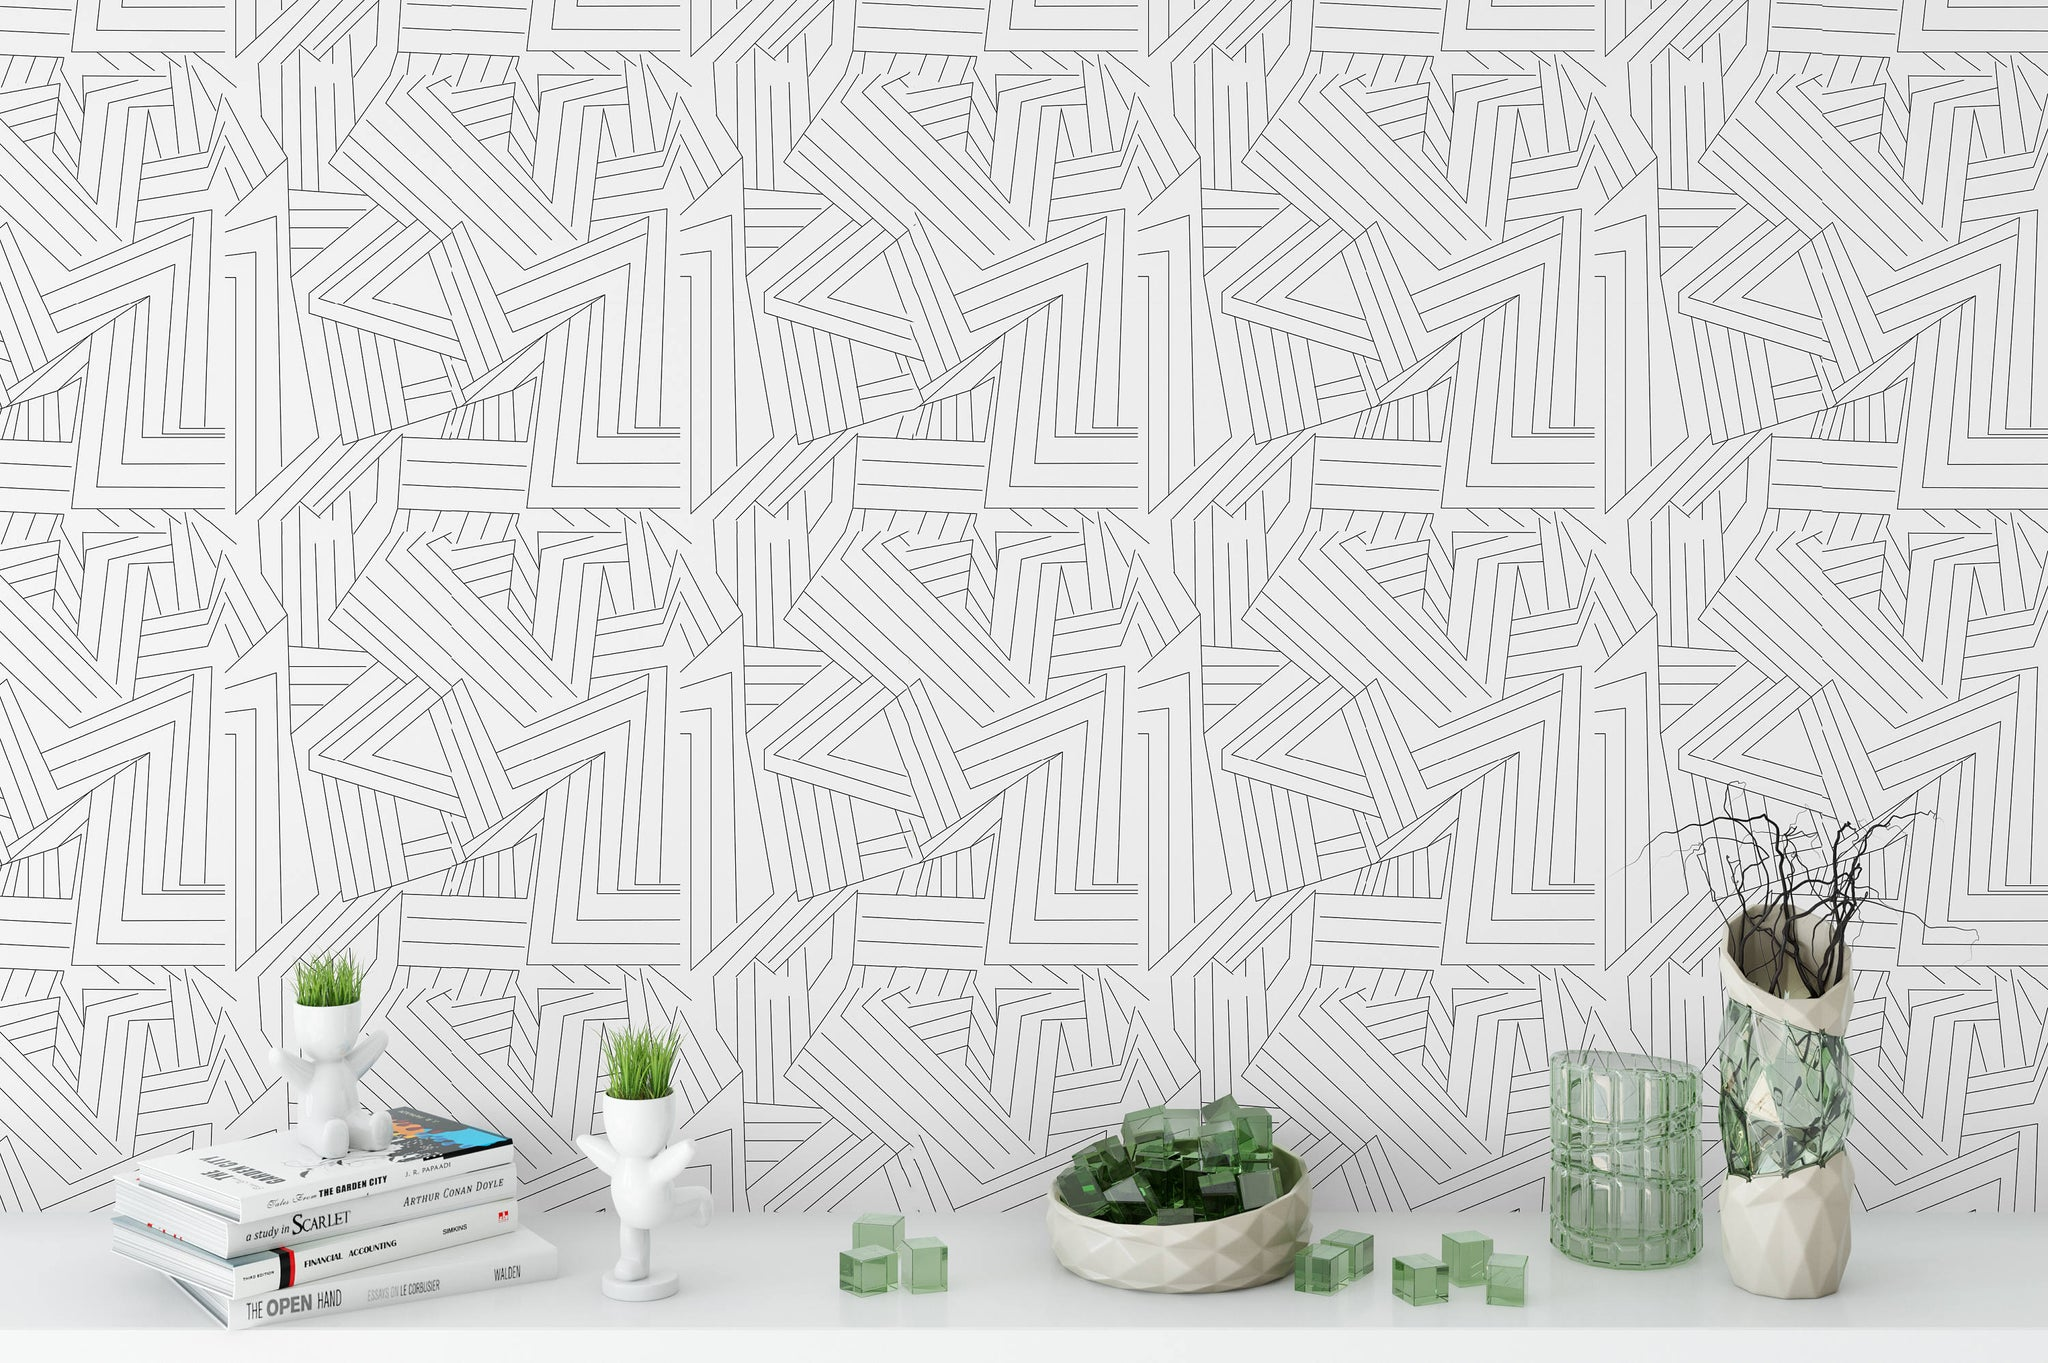 Removable Wallpaper Black White Lines Peel Stick Wallpaper Self Adhe Jll Home